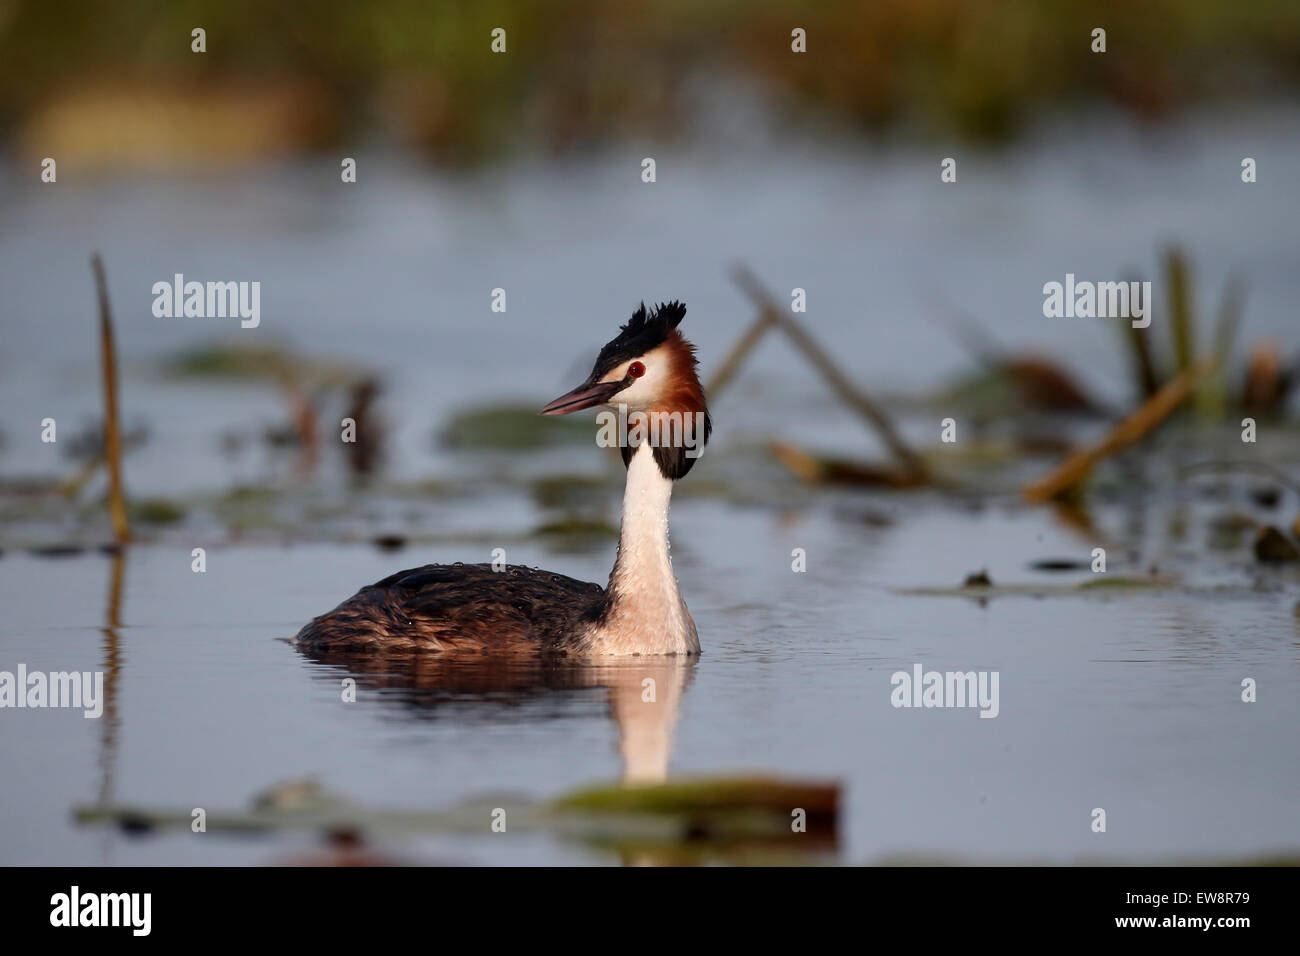 Great-crested grebe, Podiceps cristatus, single bird on water, Romania, May 2015 - Stock Image